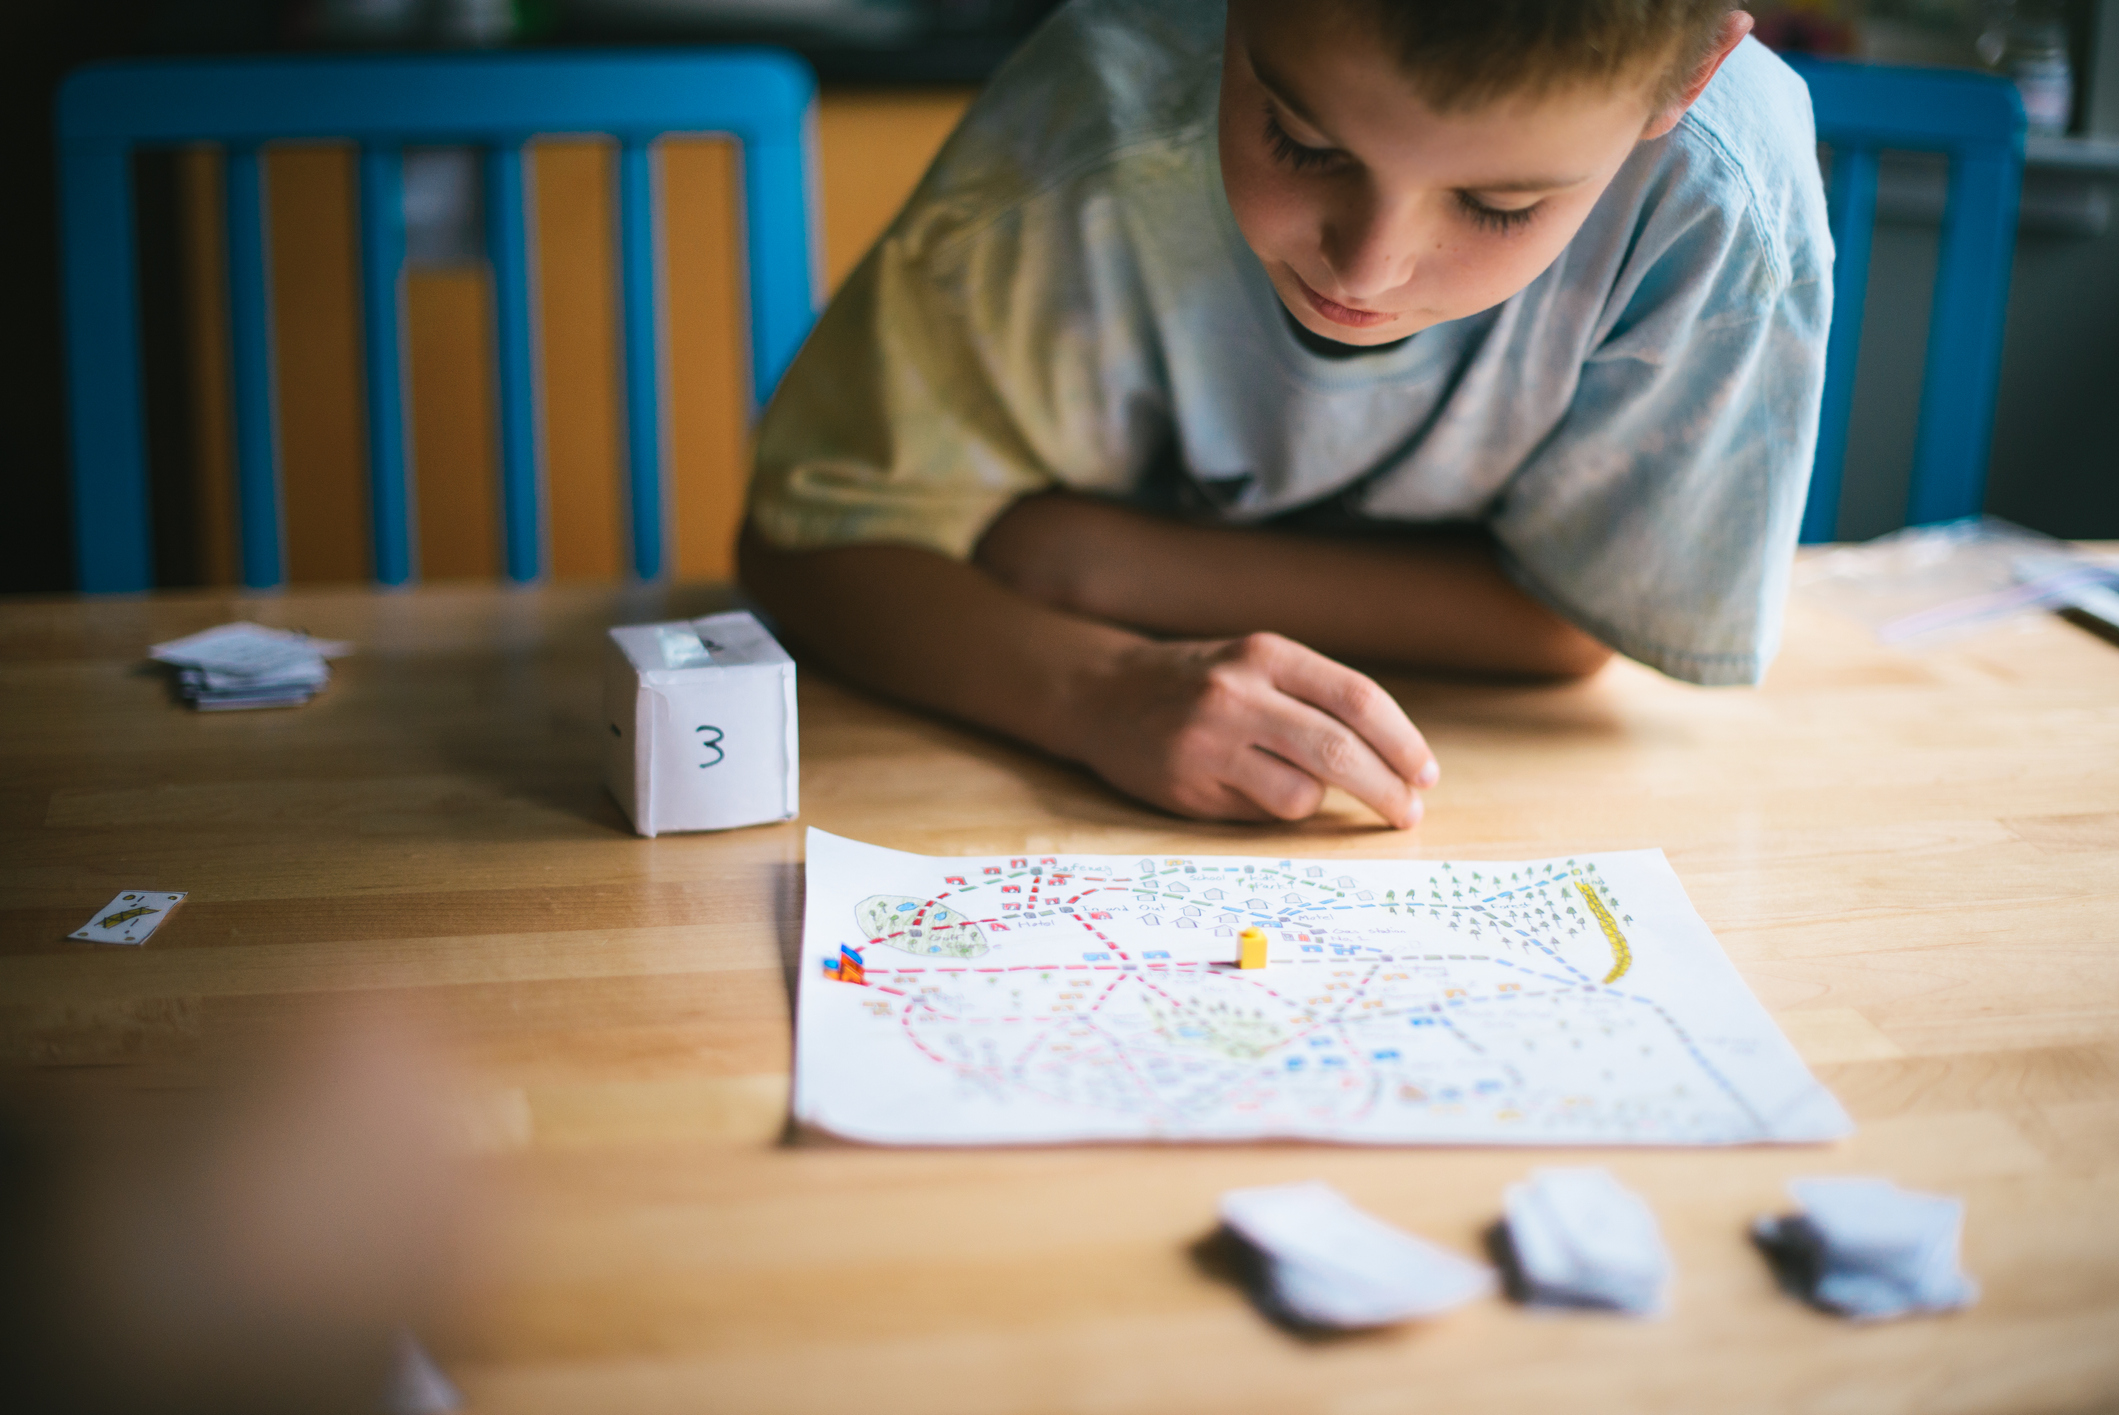 11 Homemade Board Games Lovetoknow